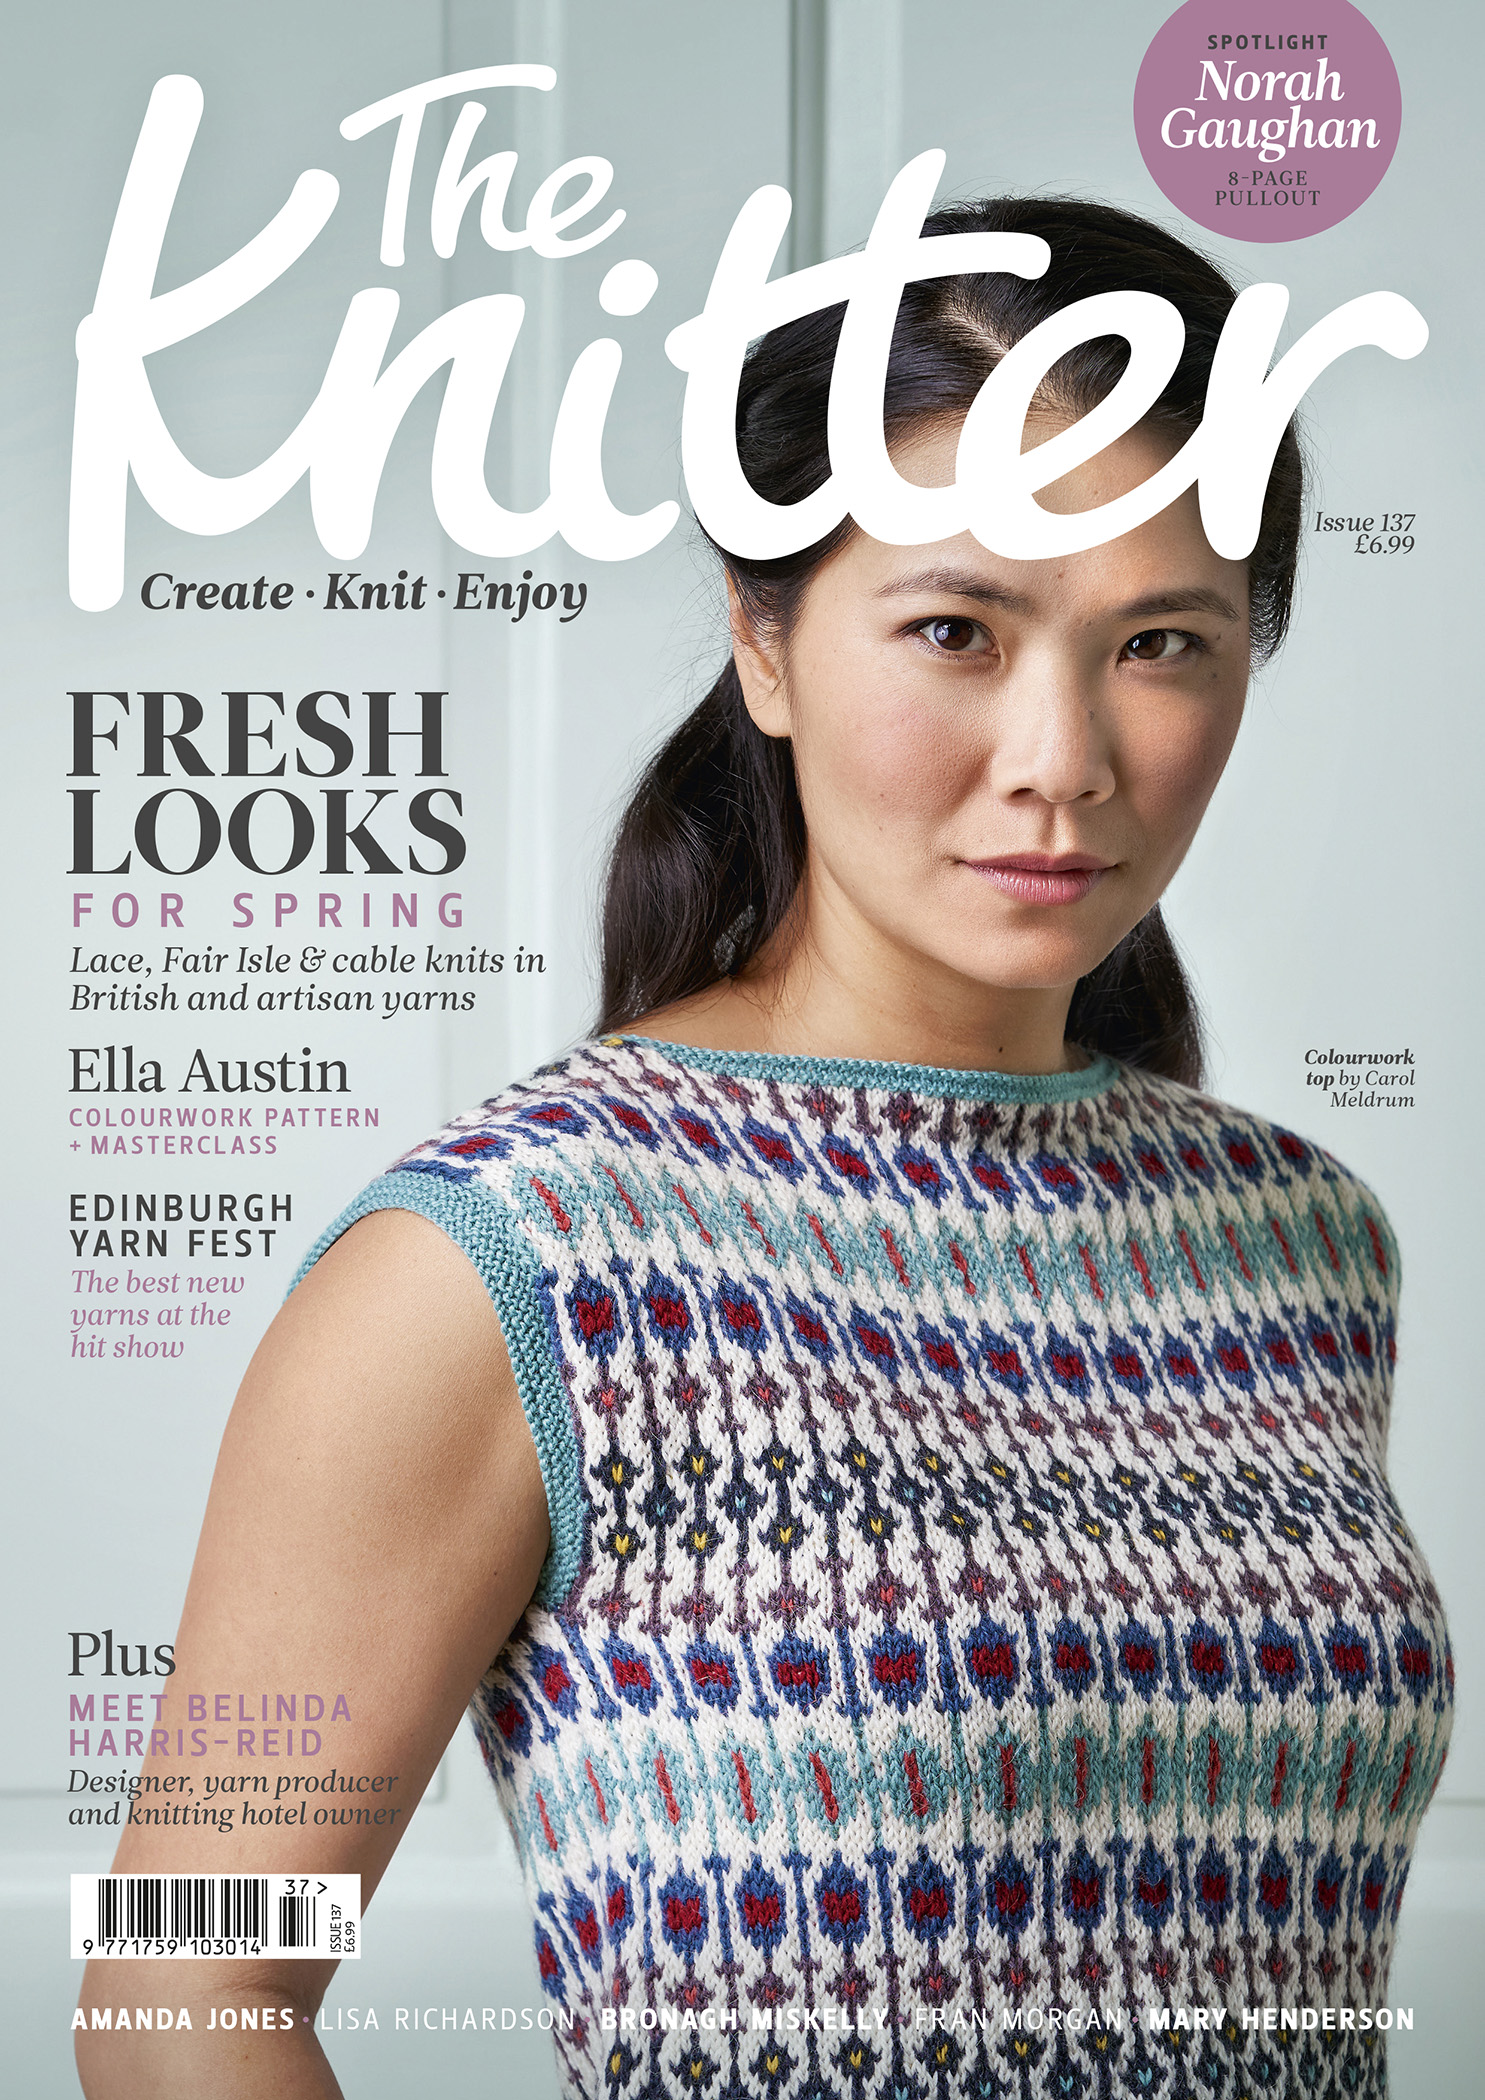 Cover of The Knitter magazine issue 137